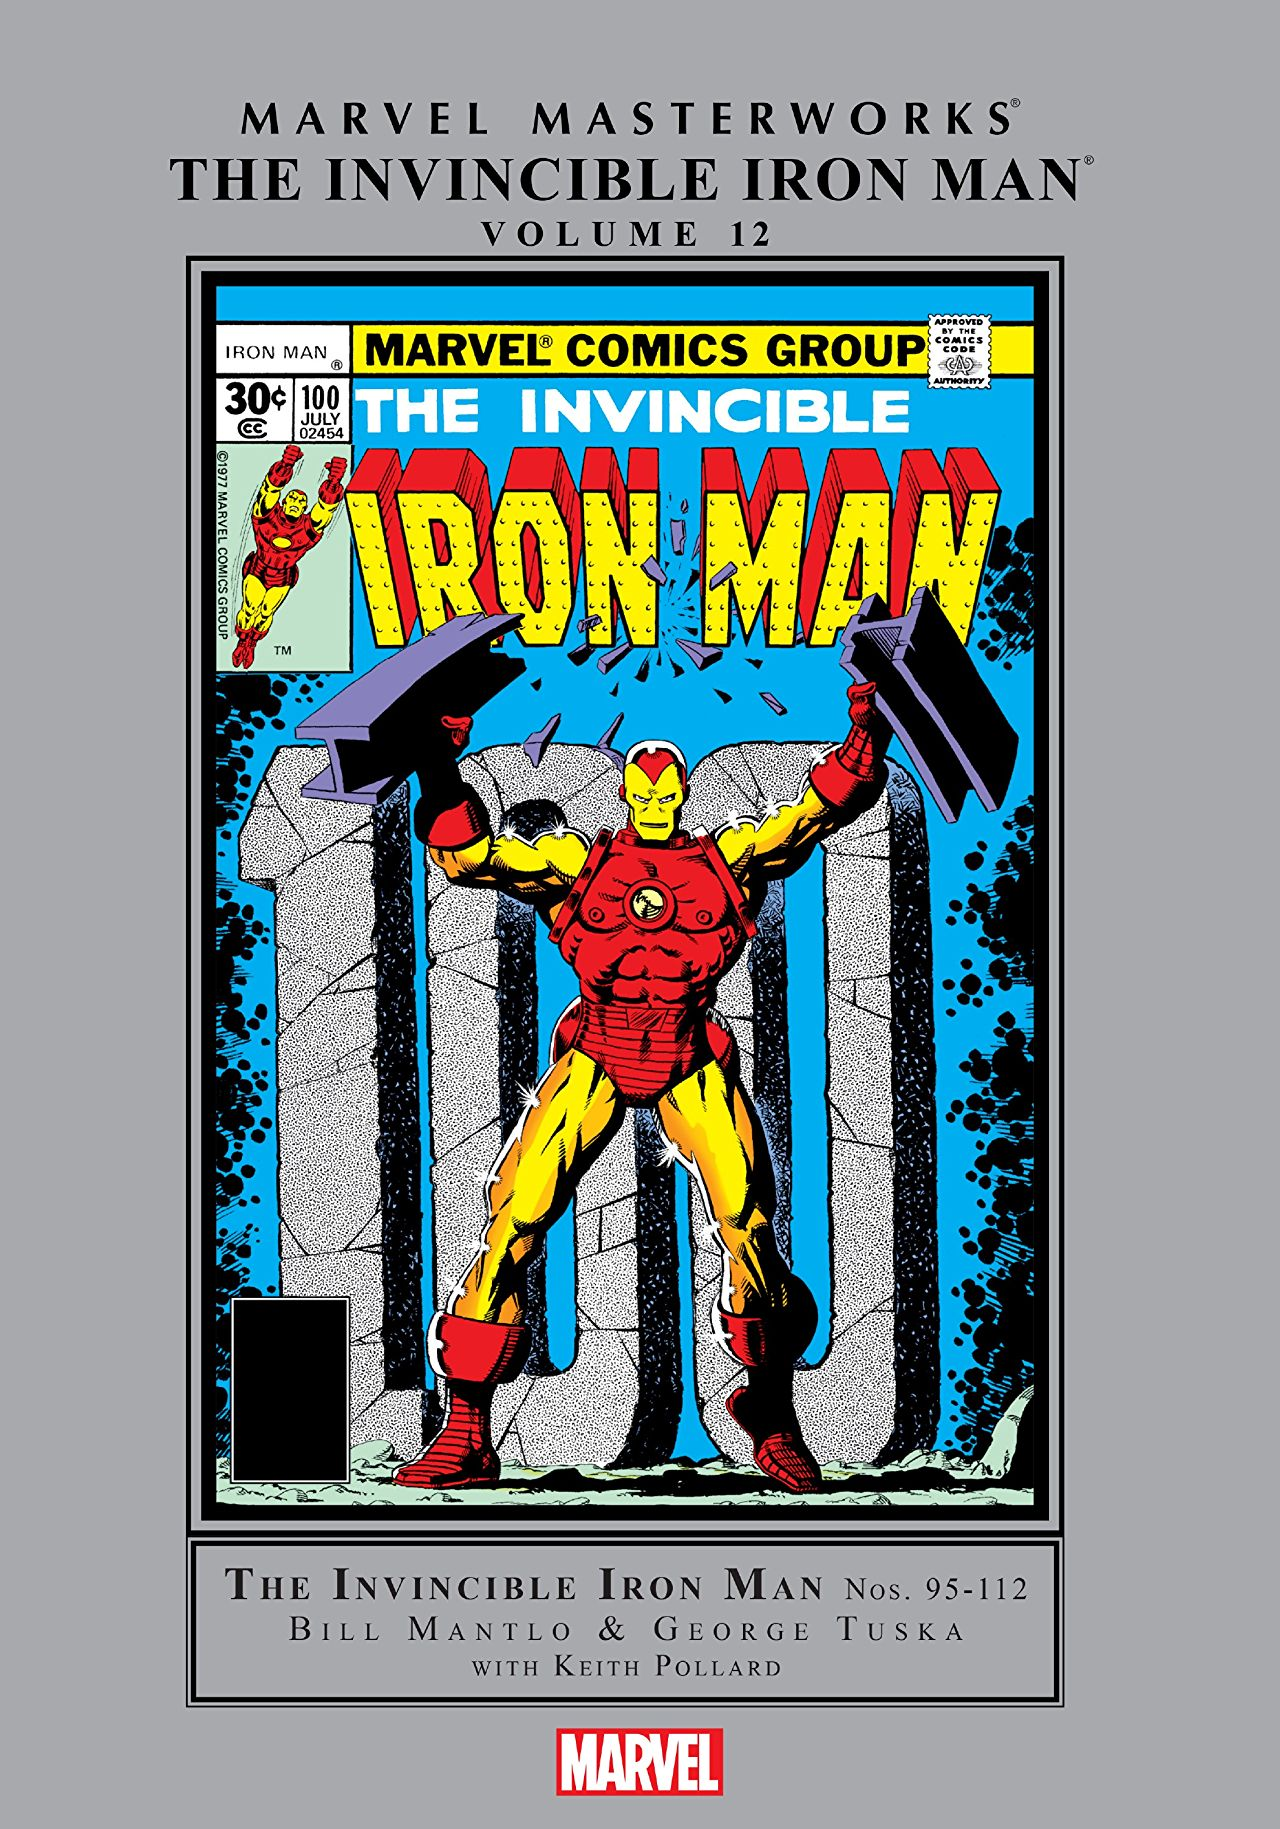 Marvel Masterworks: The Invincible Iron Man Vol. 12 (Hardcover)